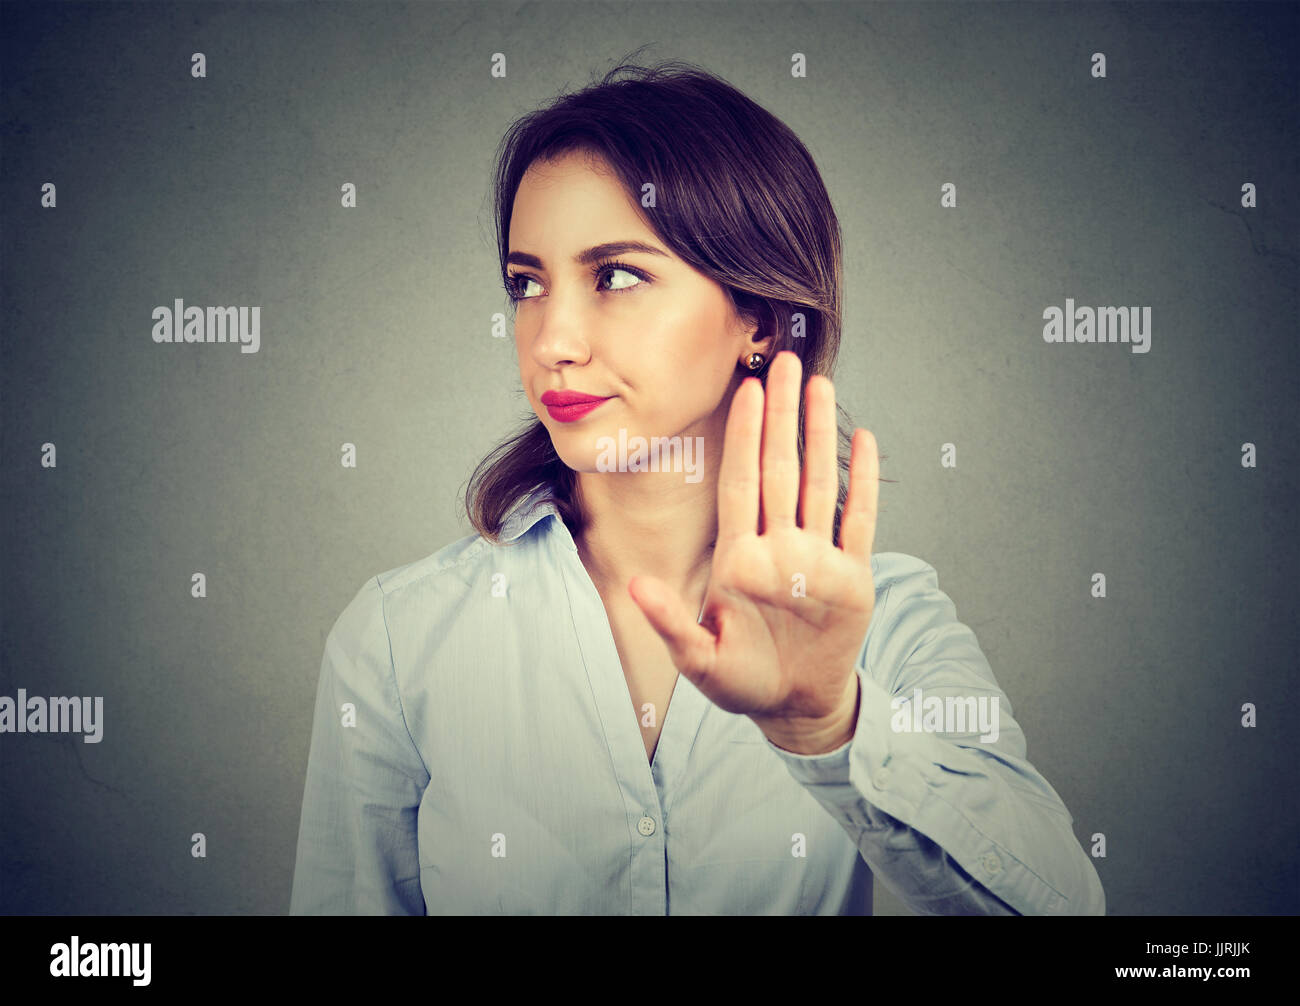 Angry woman giving talk to hand gesture with palm outward isolated gray wall background. Negative human emotion - Stock Image